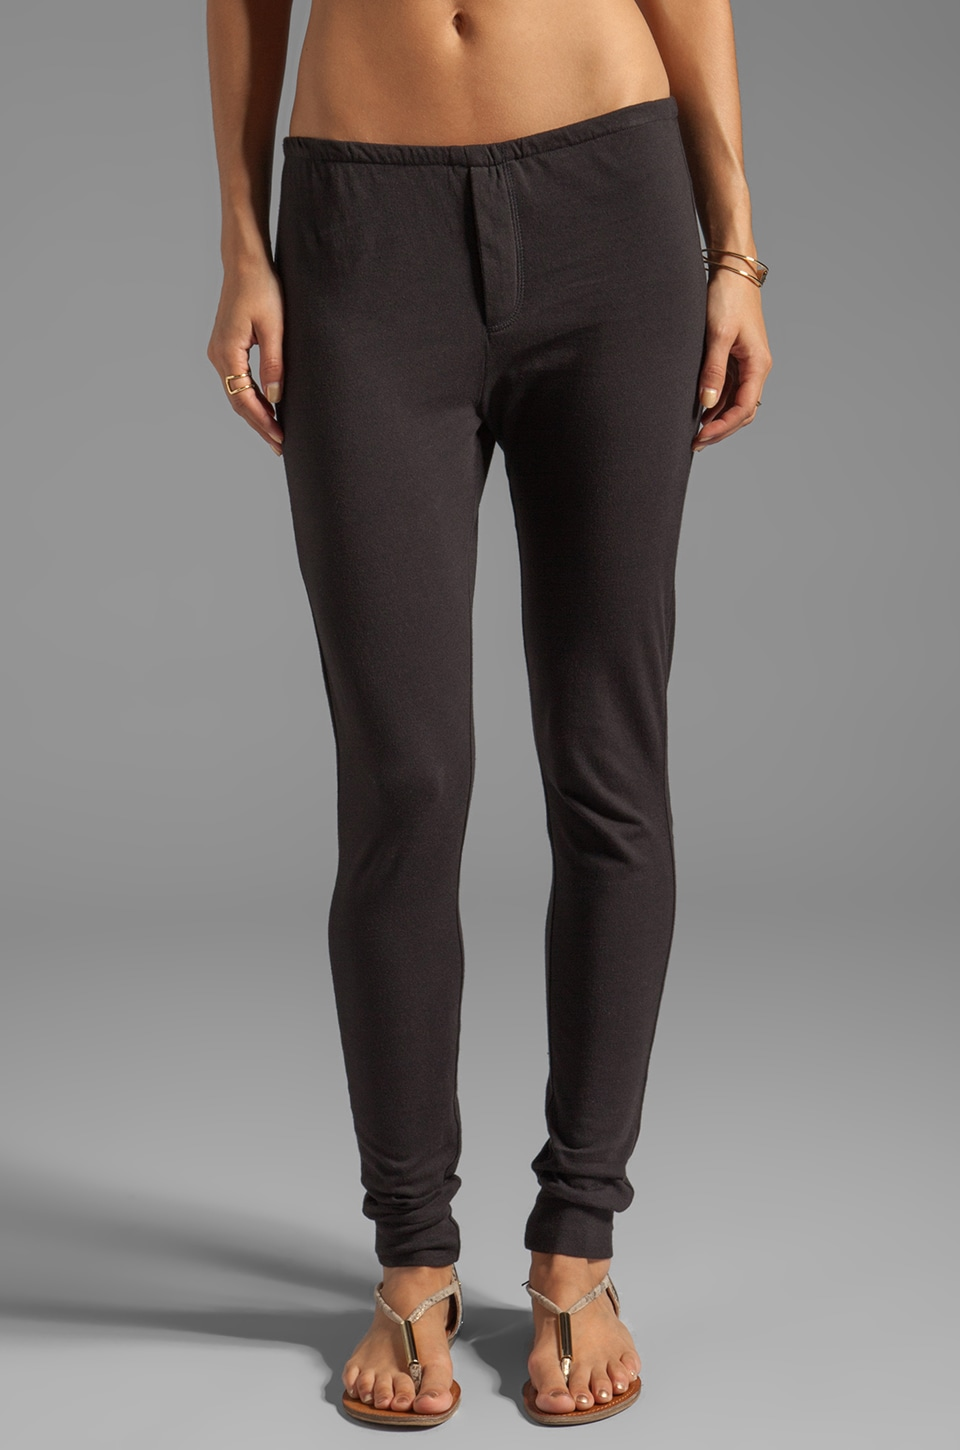 RVCA Sally Jersey Lounge Pant with Elastic Waistband in Black